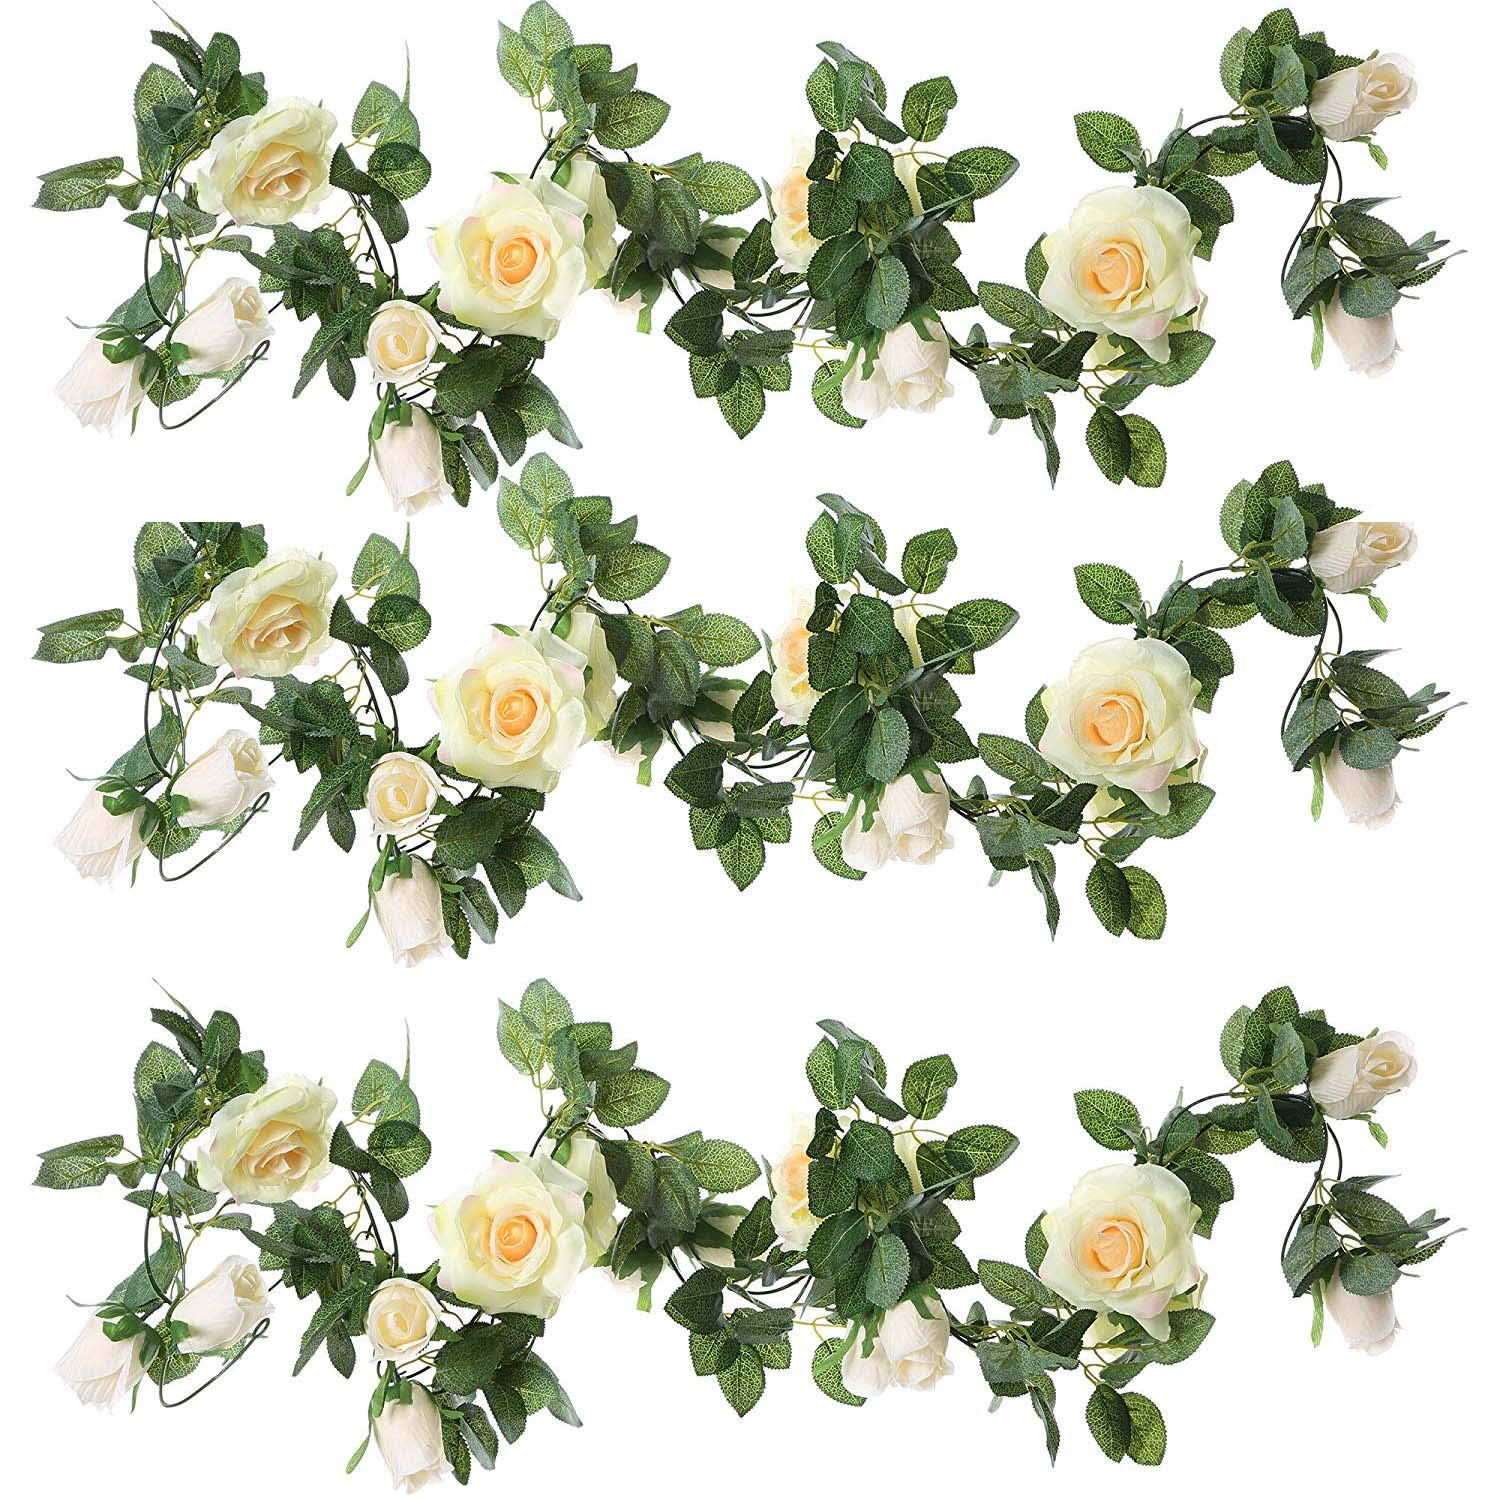 ZEROIN-3-Packs-Artificial-Flowers-Hanging-Plants-Silk-Flower-Garlands-Green-Plant-Home-Garden-Wall-Fence-Stairway-Outdoor-Wedding-Hanging-Baskets-Decor-Champagne